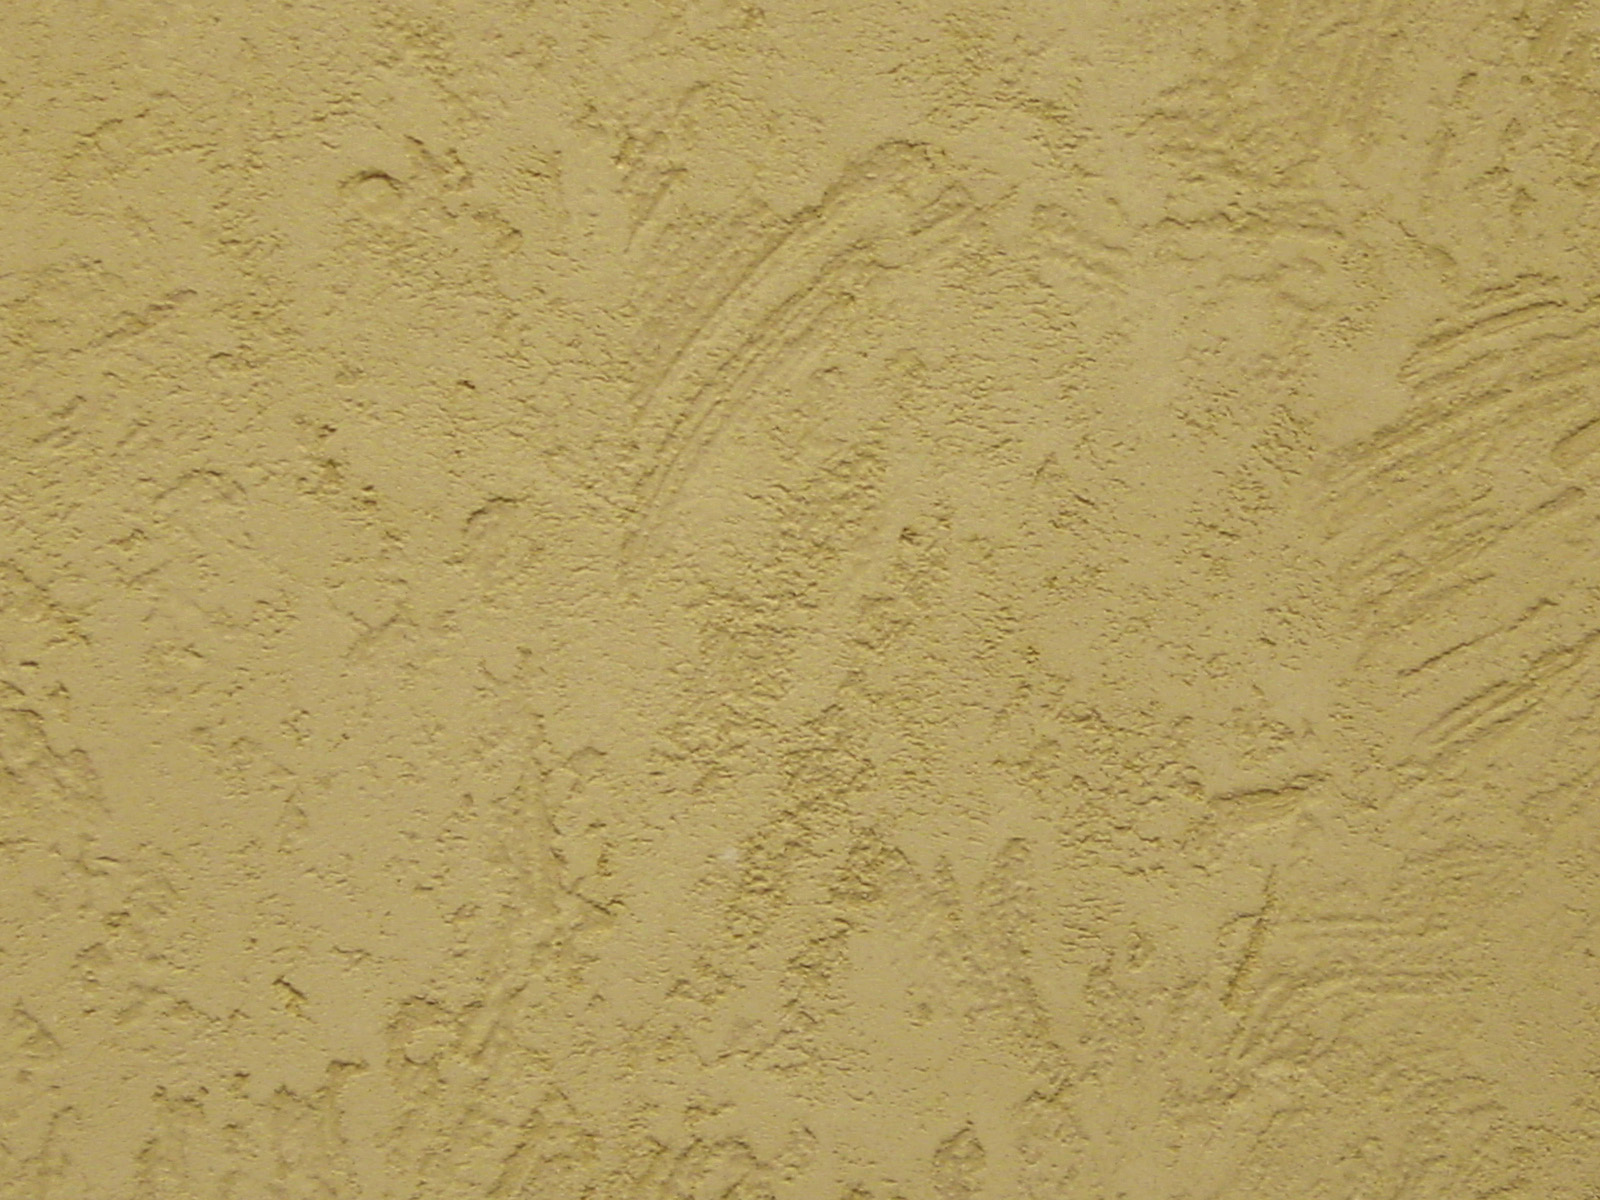 fossil texture